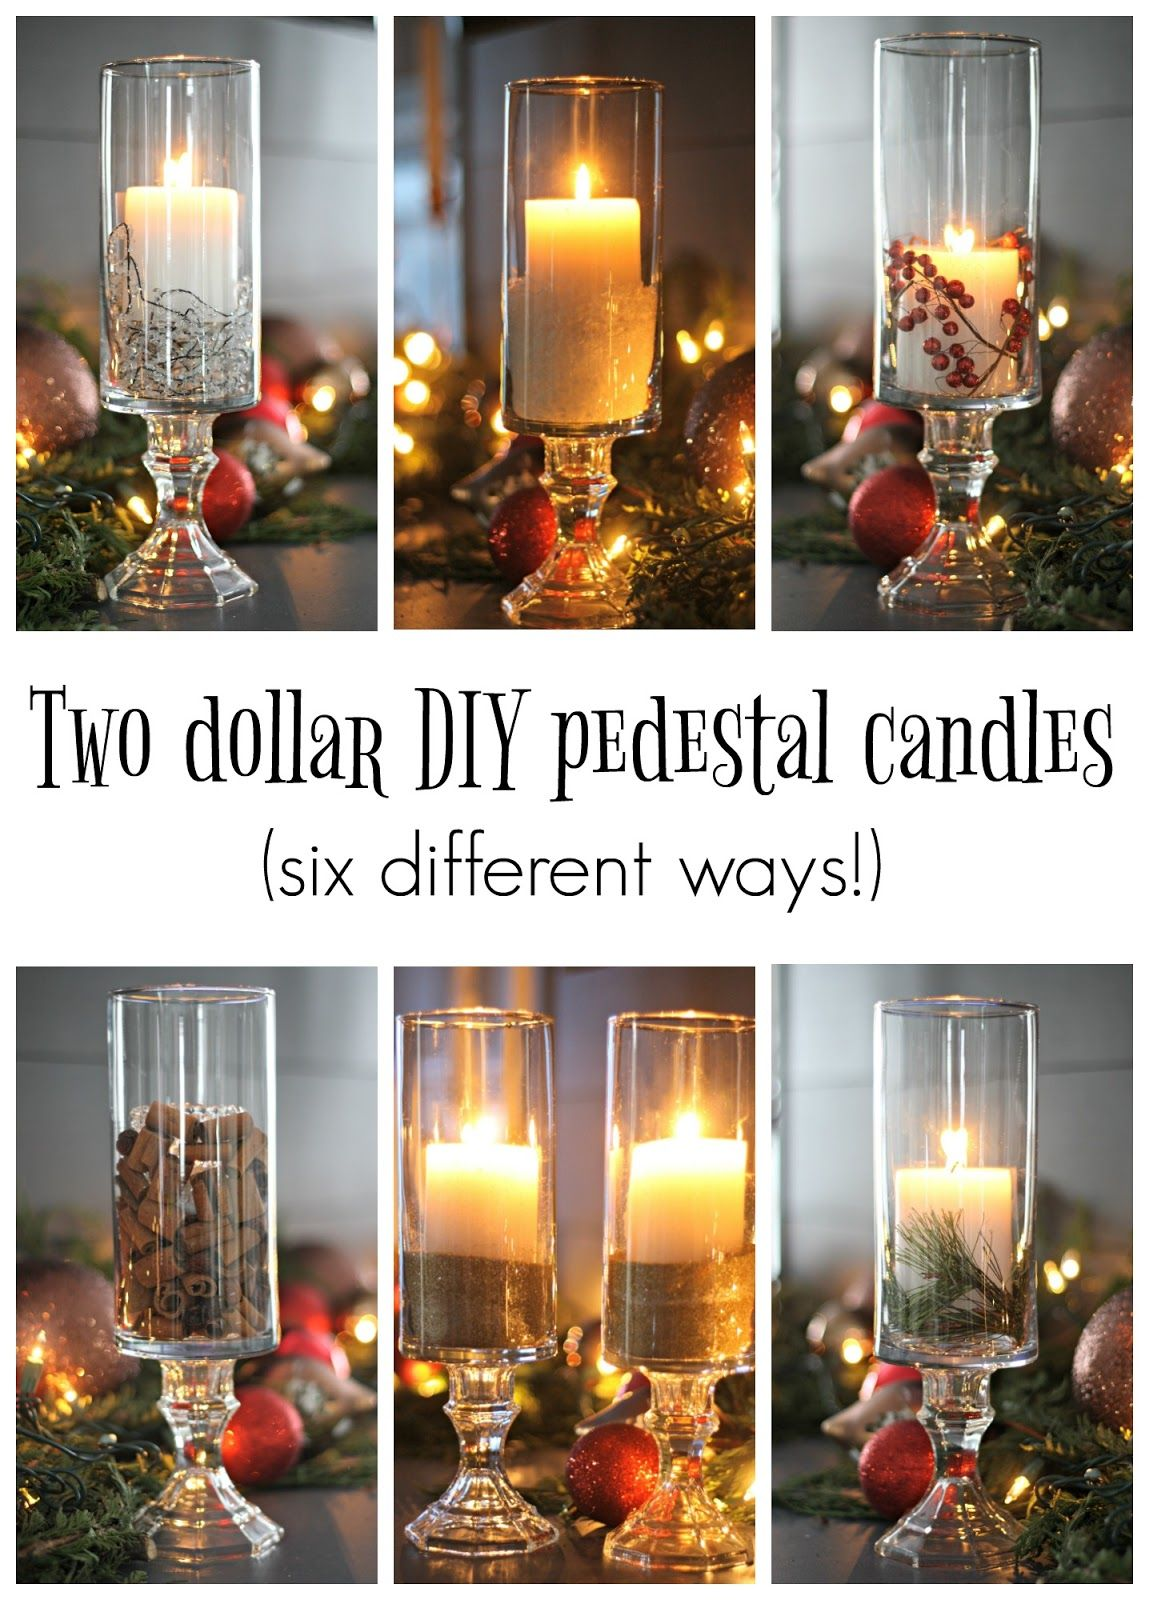 Beautiful DIY pedestal candles (using dollar store items